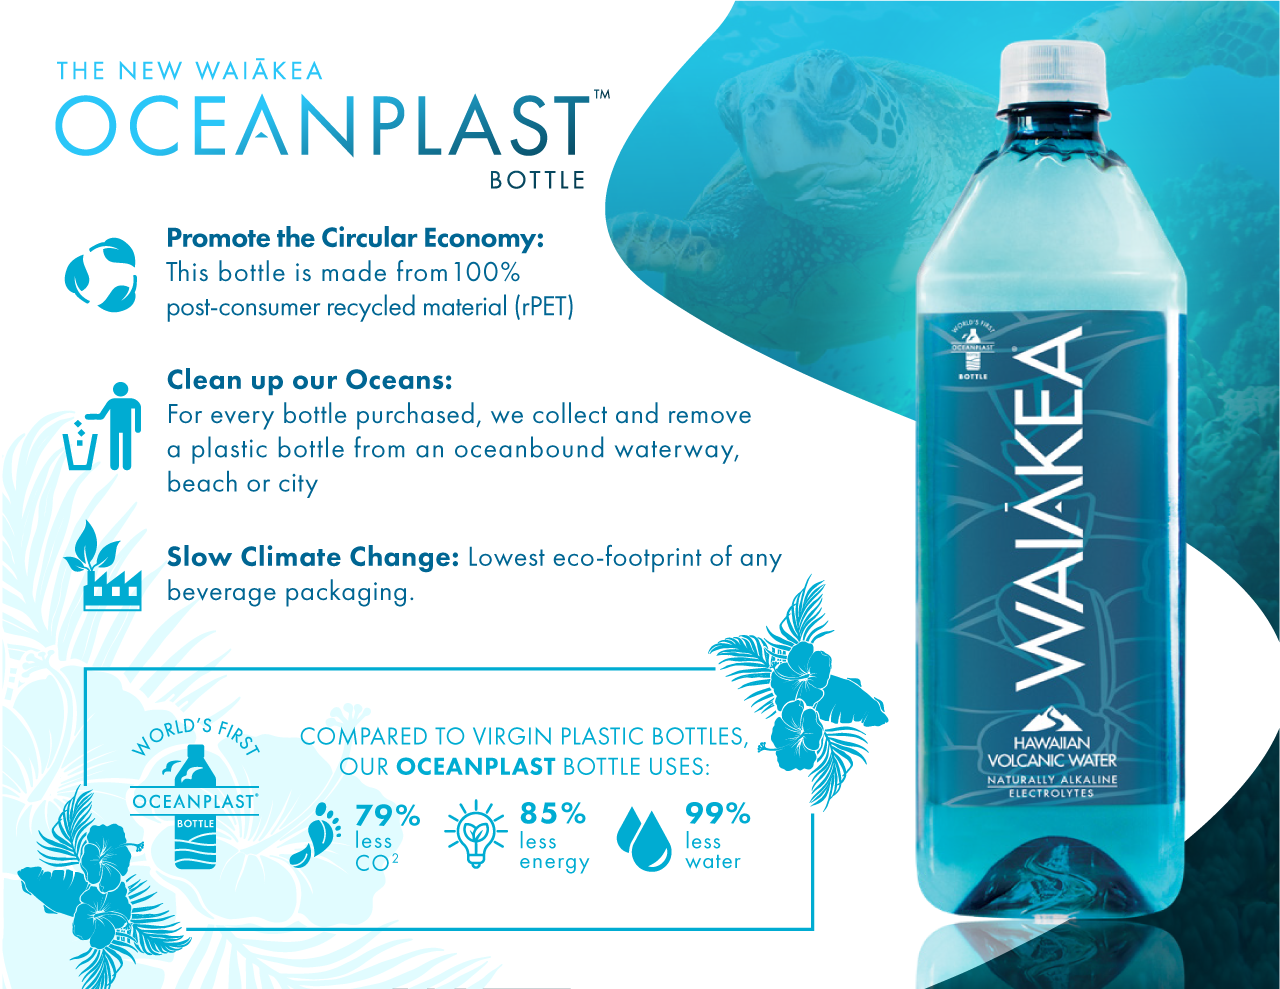 image with large bottle on right side. Text reading in bullet points - promote circular economy, clean up our ocean, slow climate change